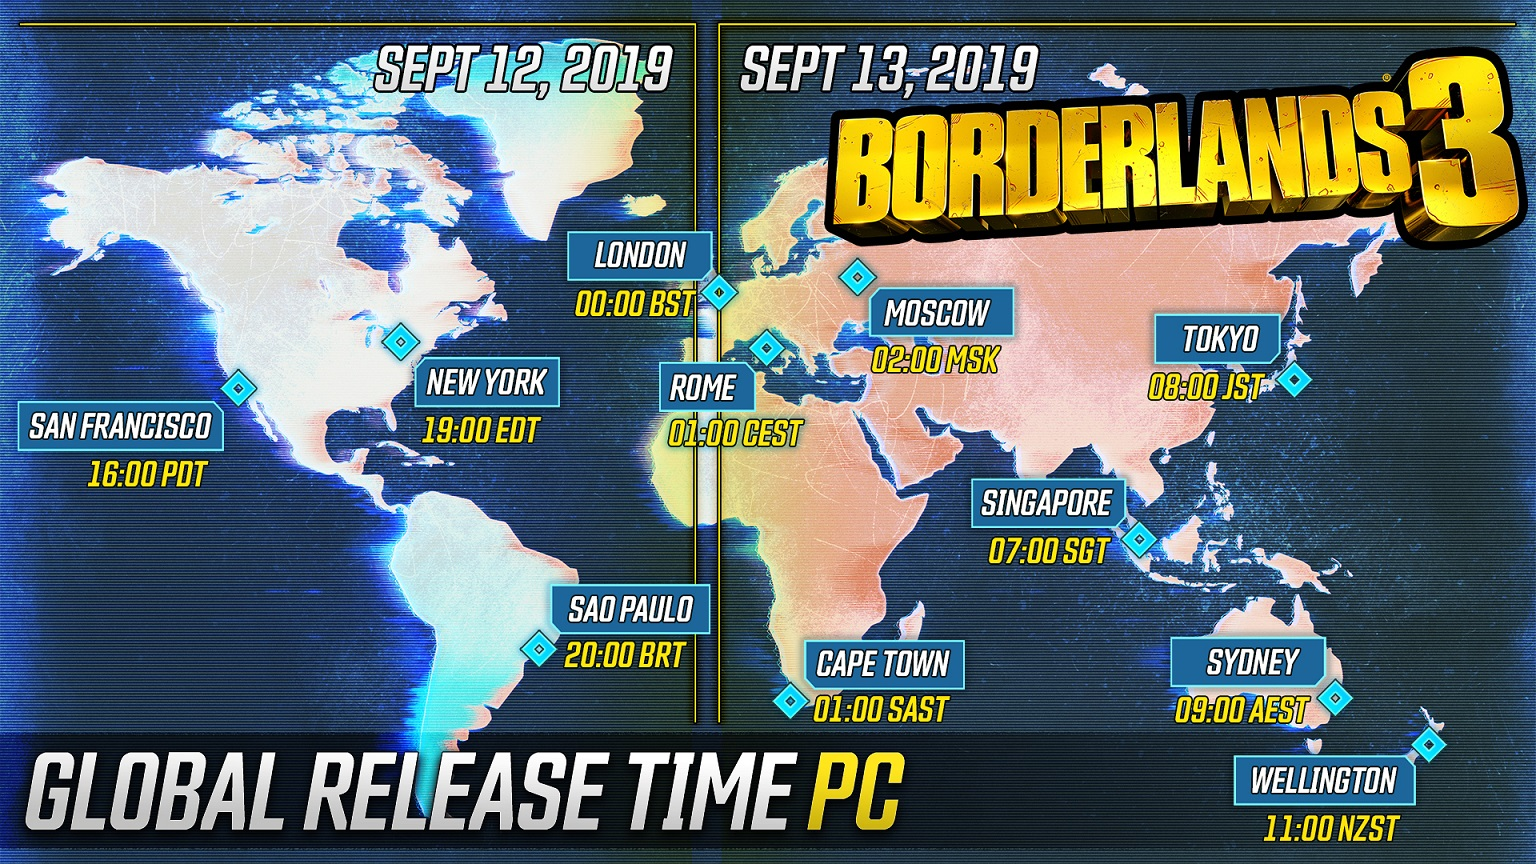 PC Release Times